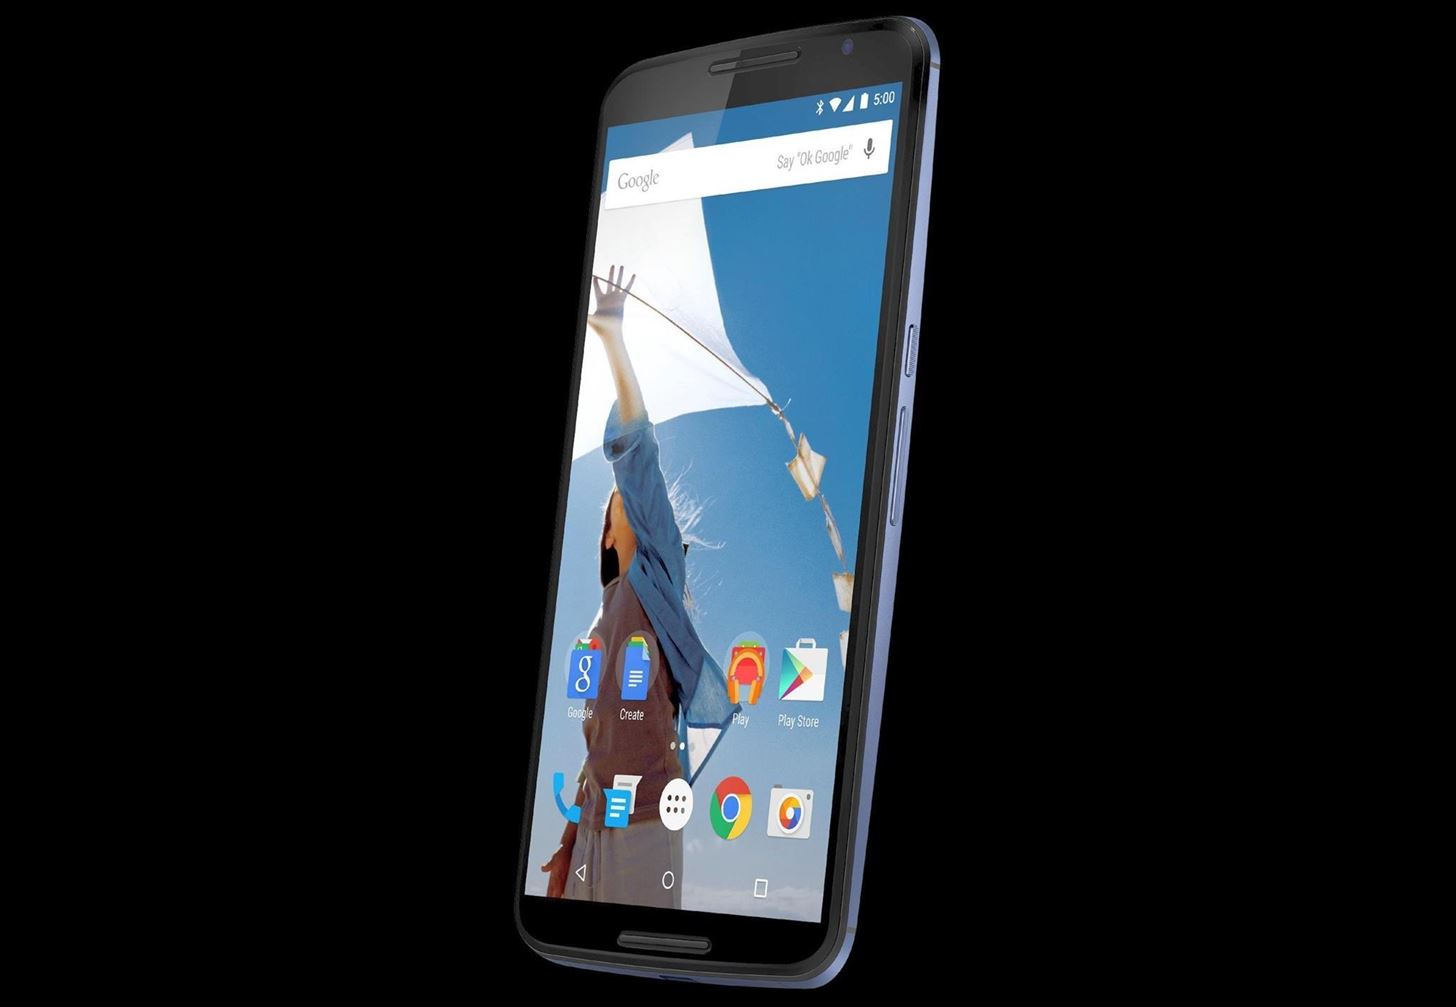 Google Teases Nexus 6 in Leaked Android Ads